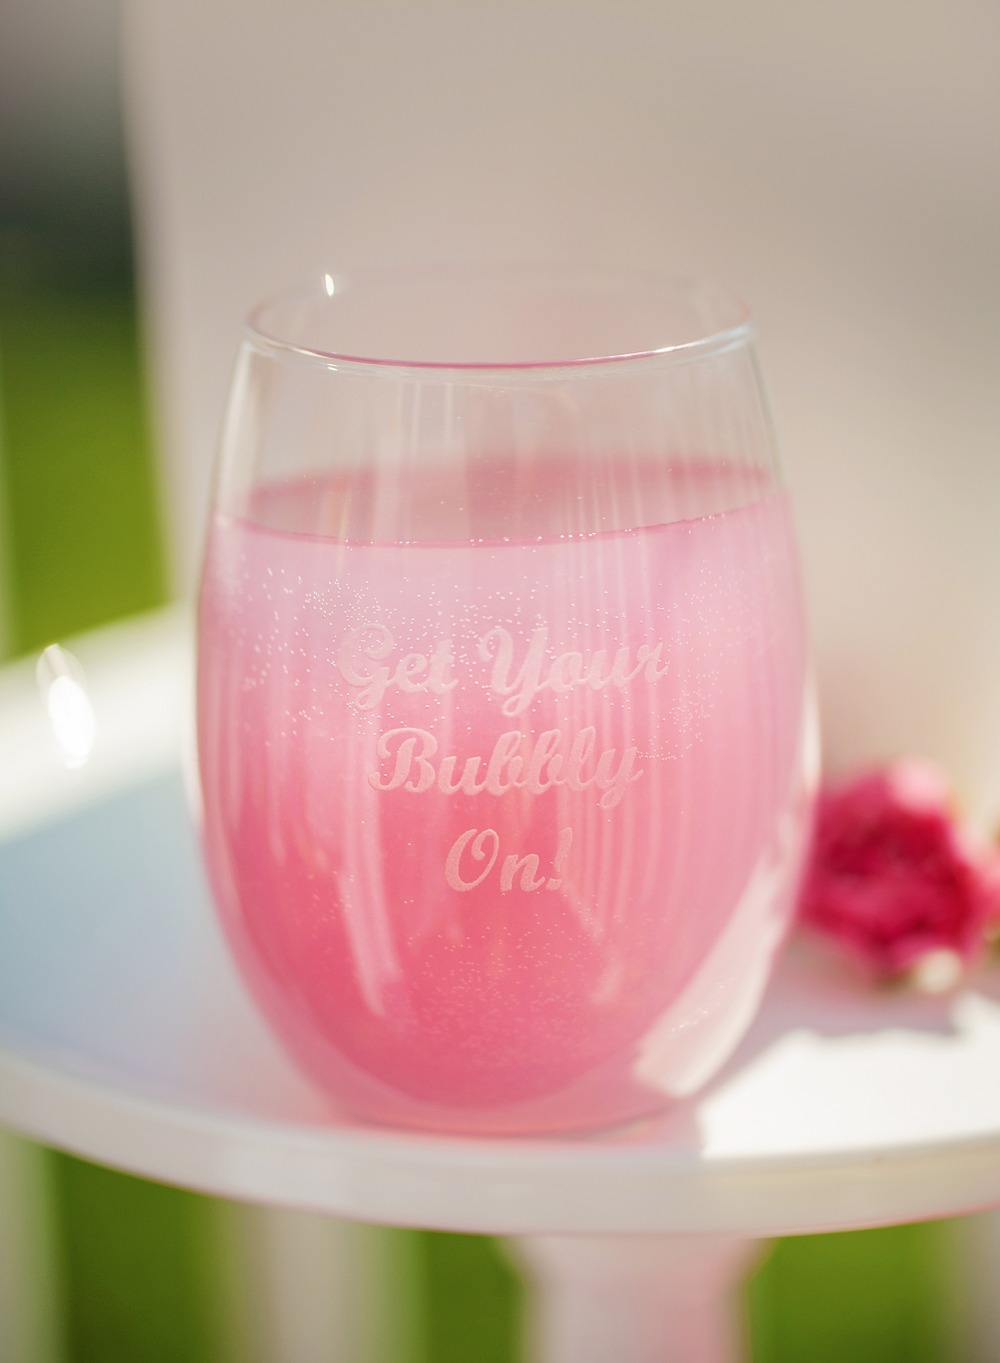 Get your bubbly on bridal shower glass